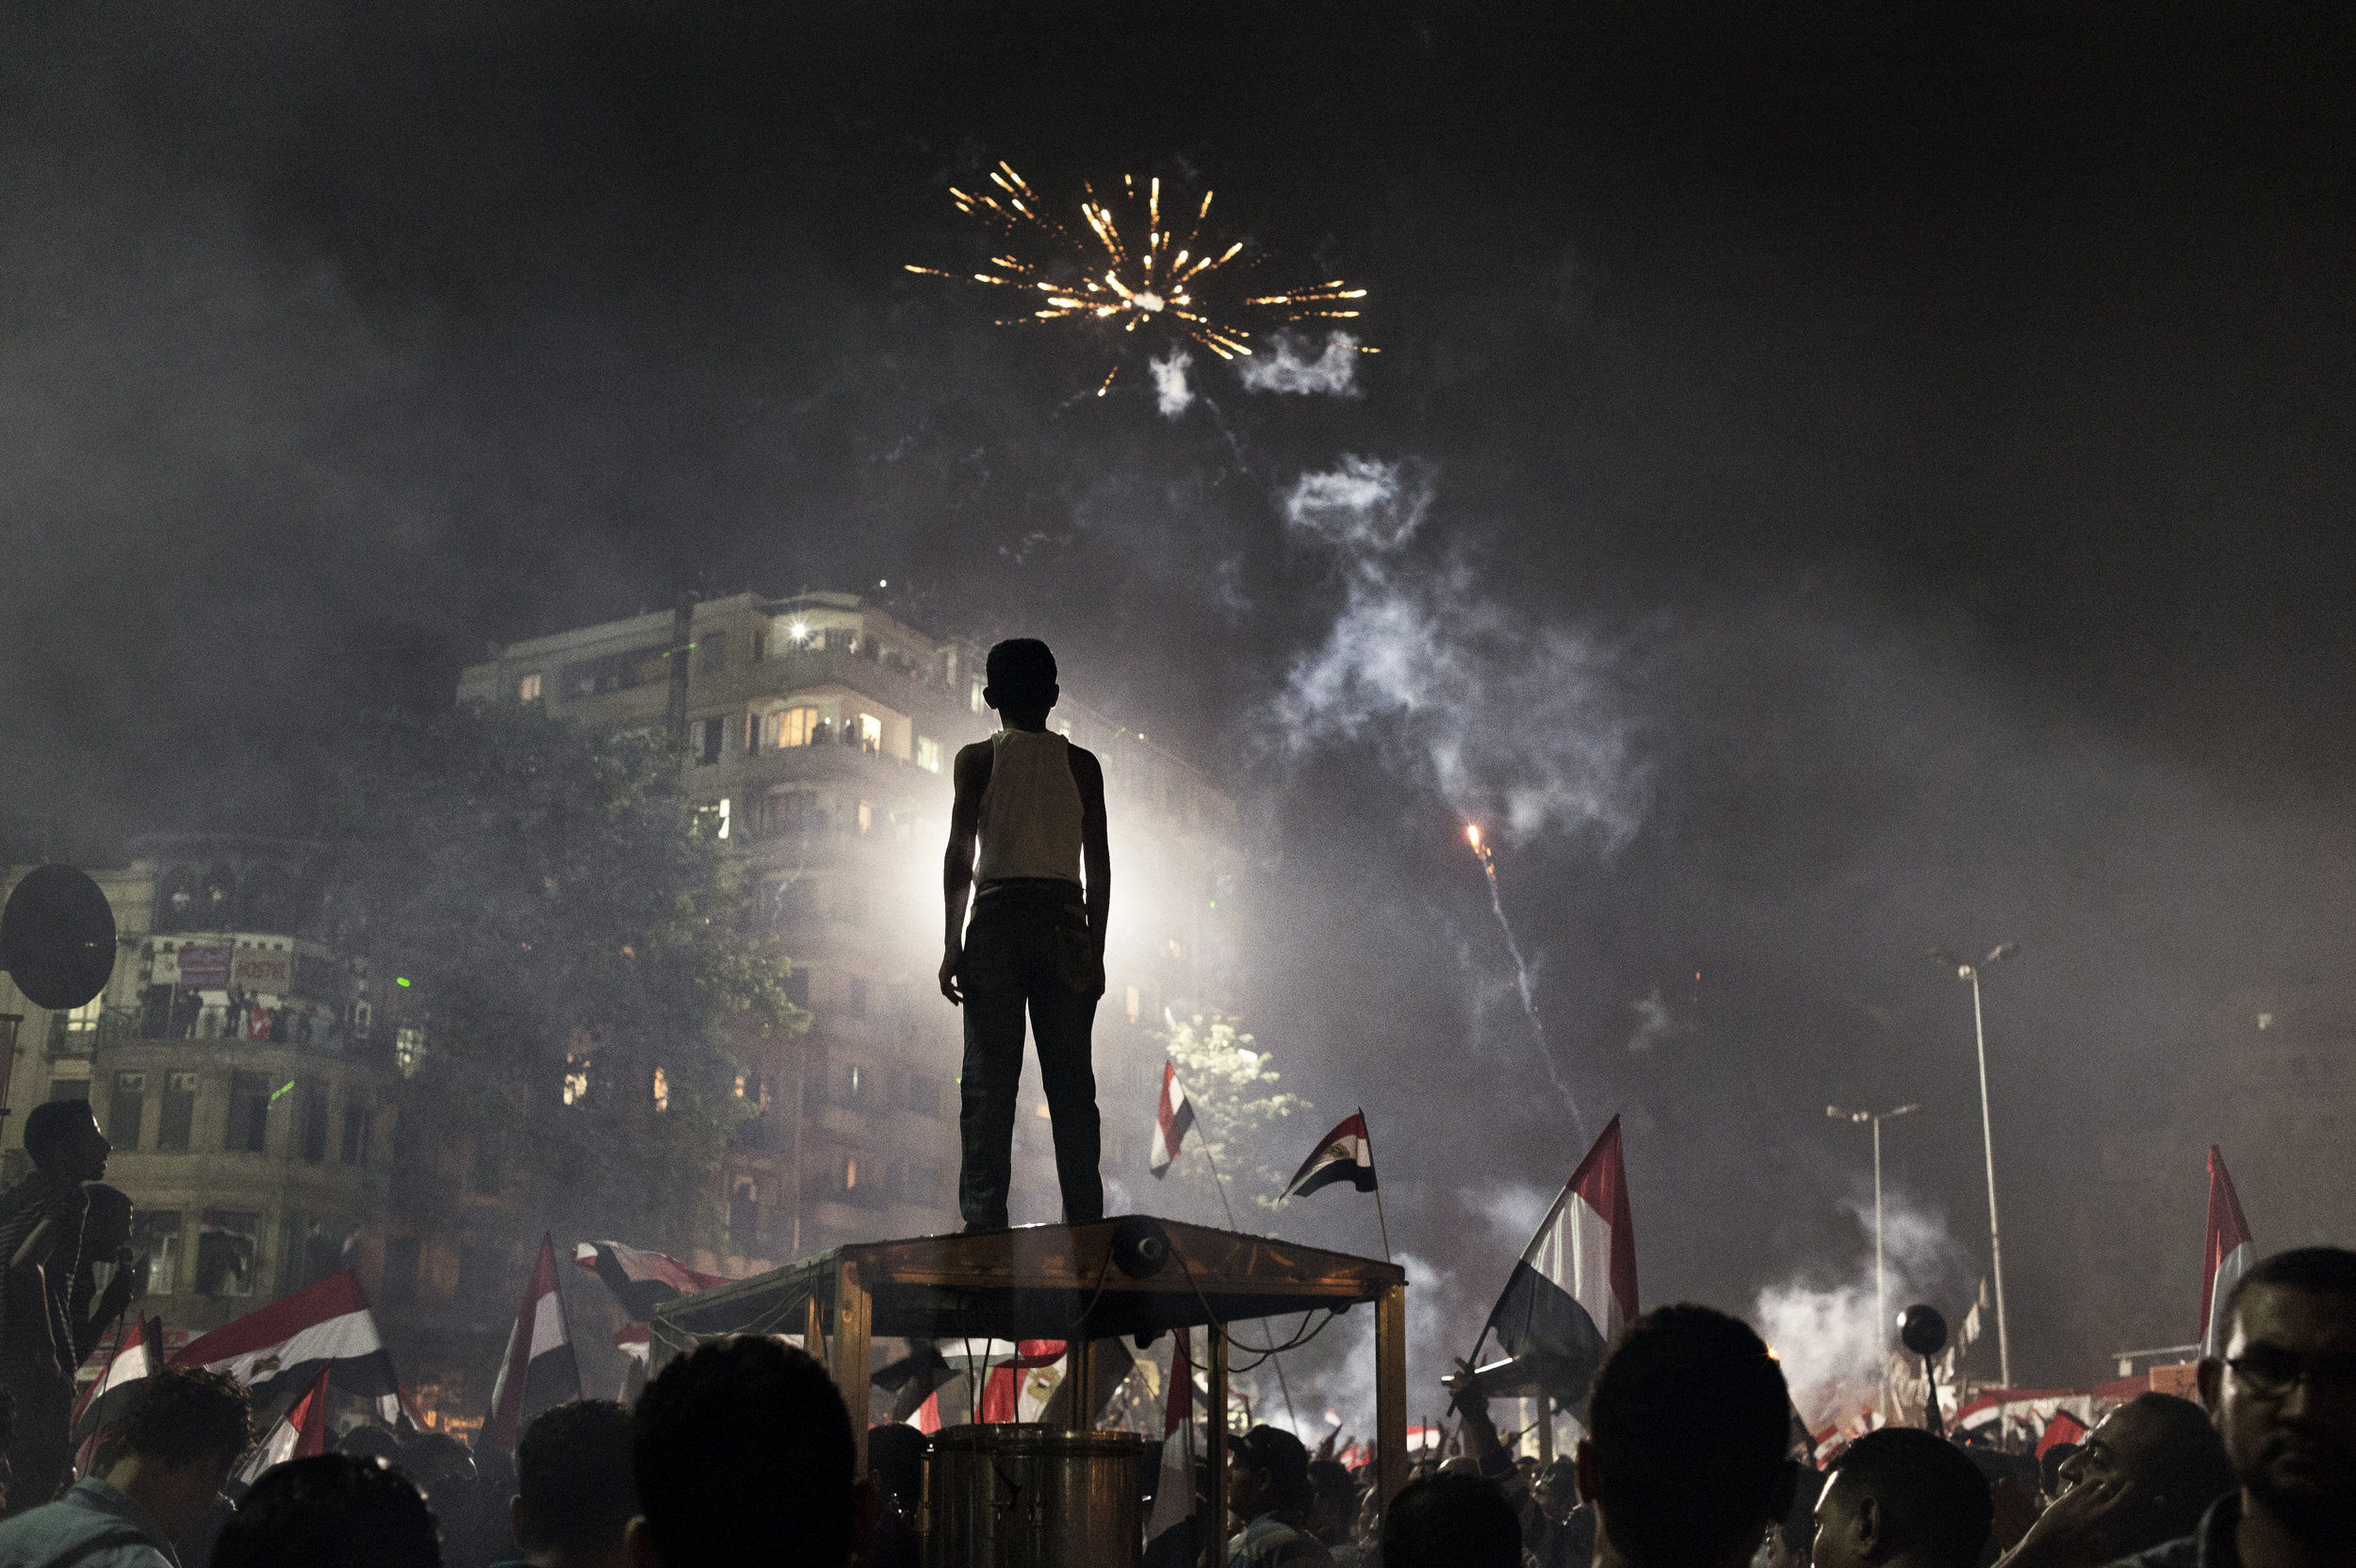 Cairo, Egypt. July 3, 2013. Fireworks light the sky after massive demonstrations turned to celebration in and around Tahrir Square, Cairo, as Egyptian President Mohamed Morsi was ousted by the military and taken into custody.